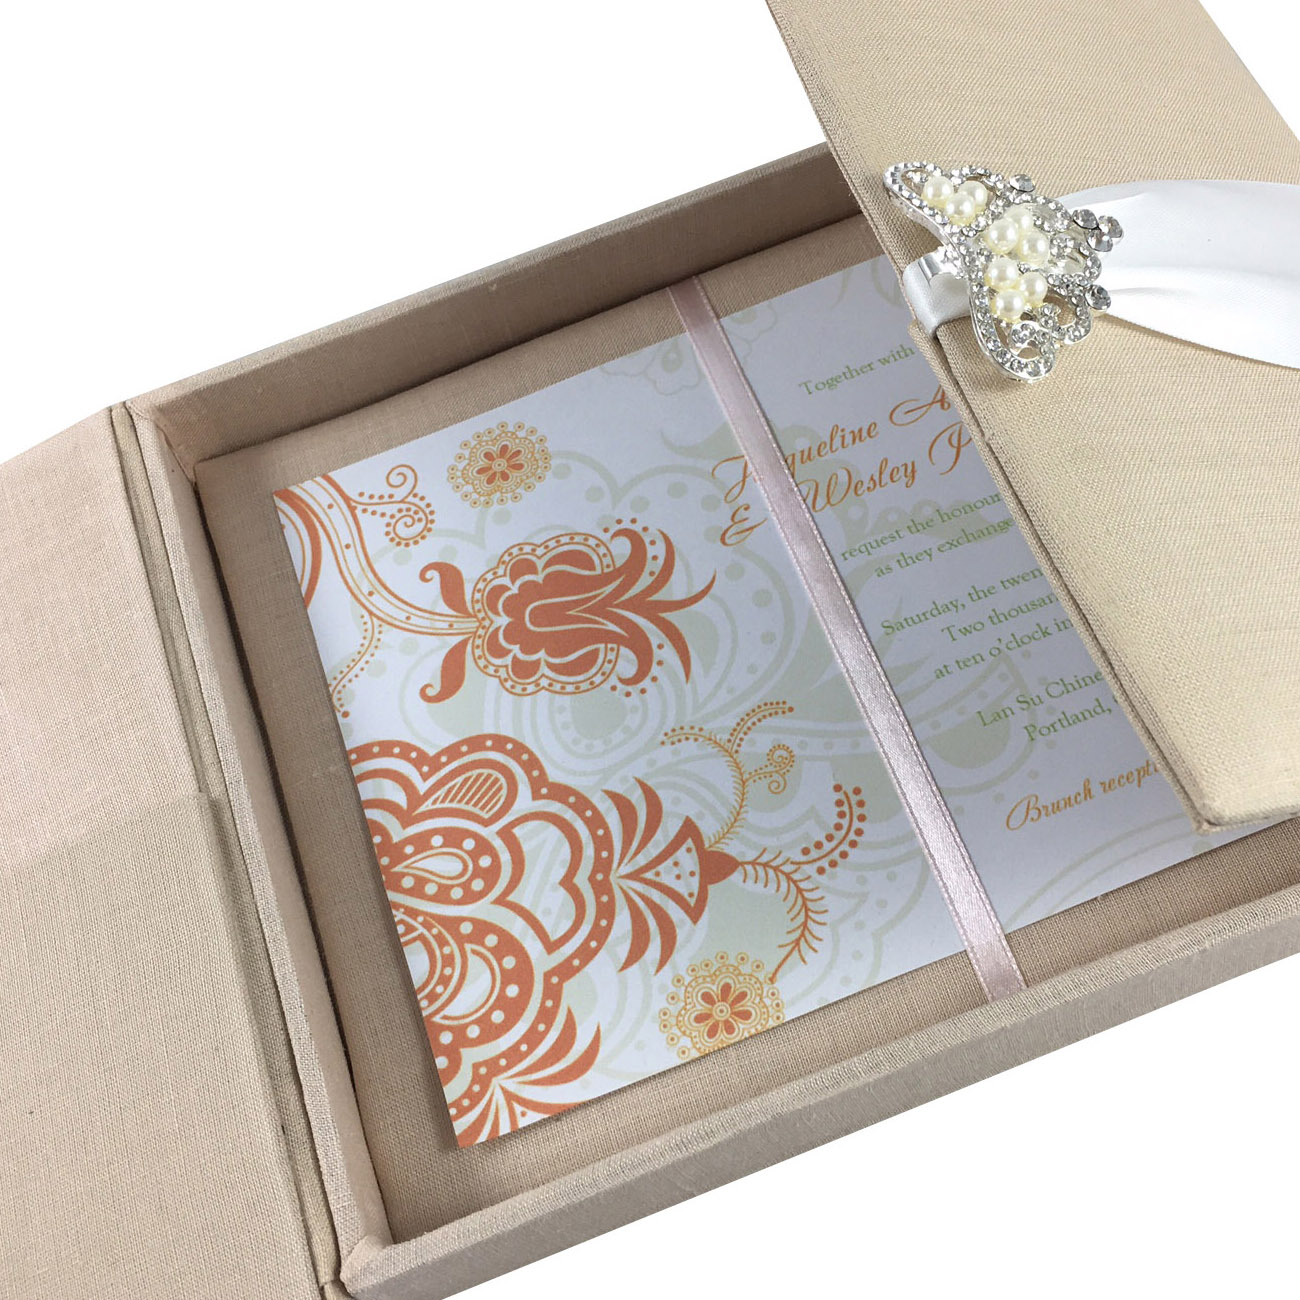 linen couture wedding invitation box